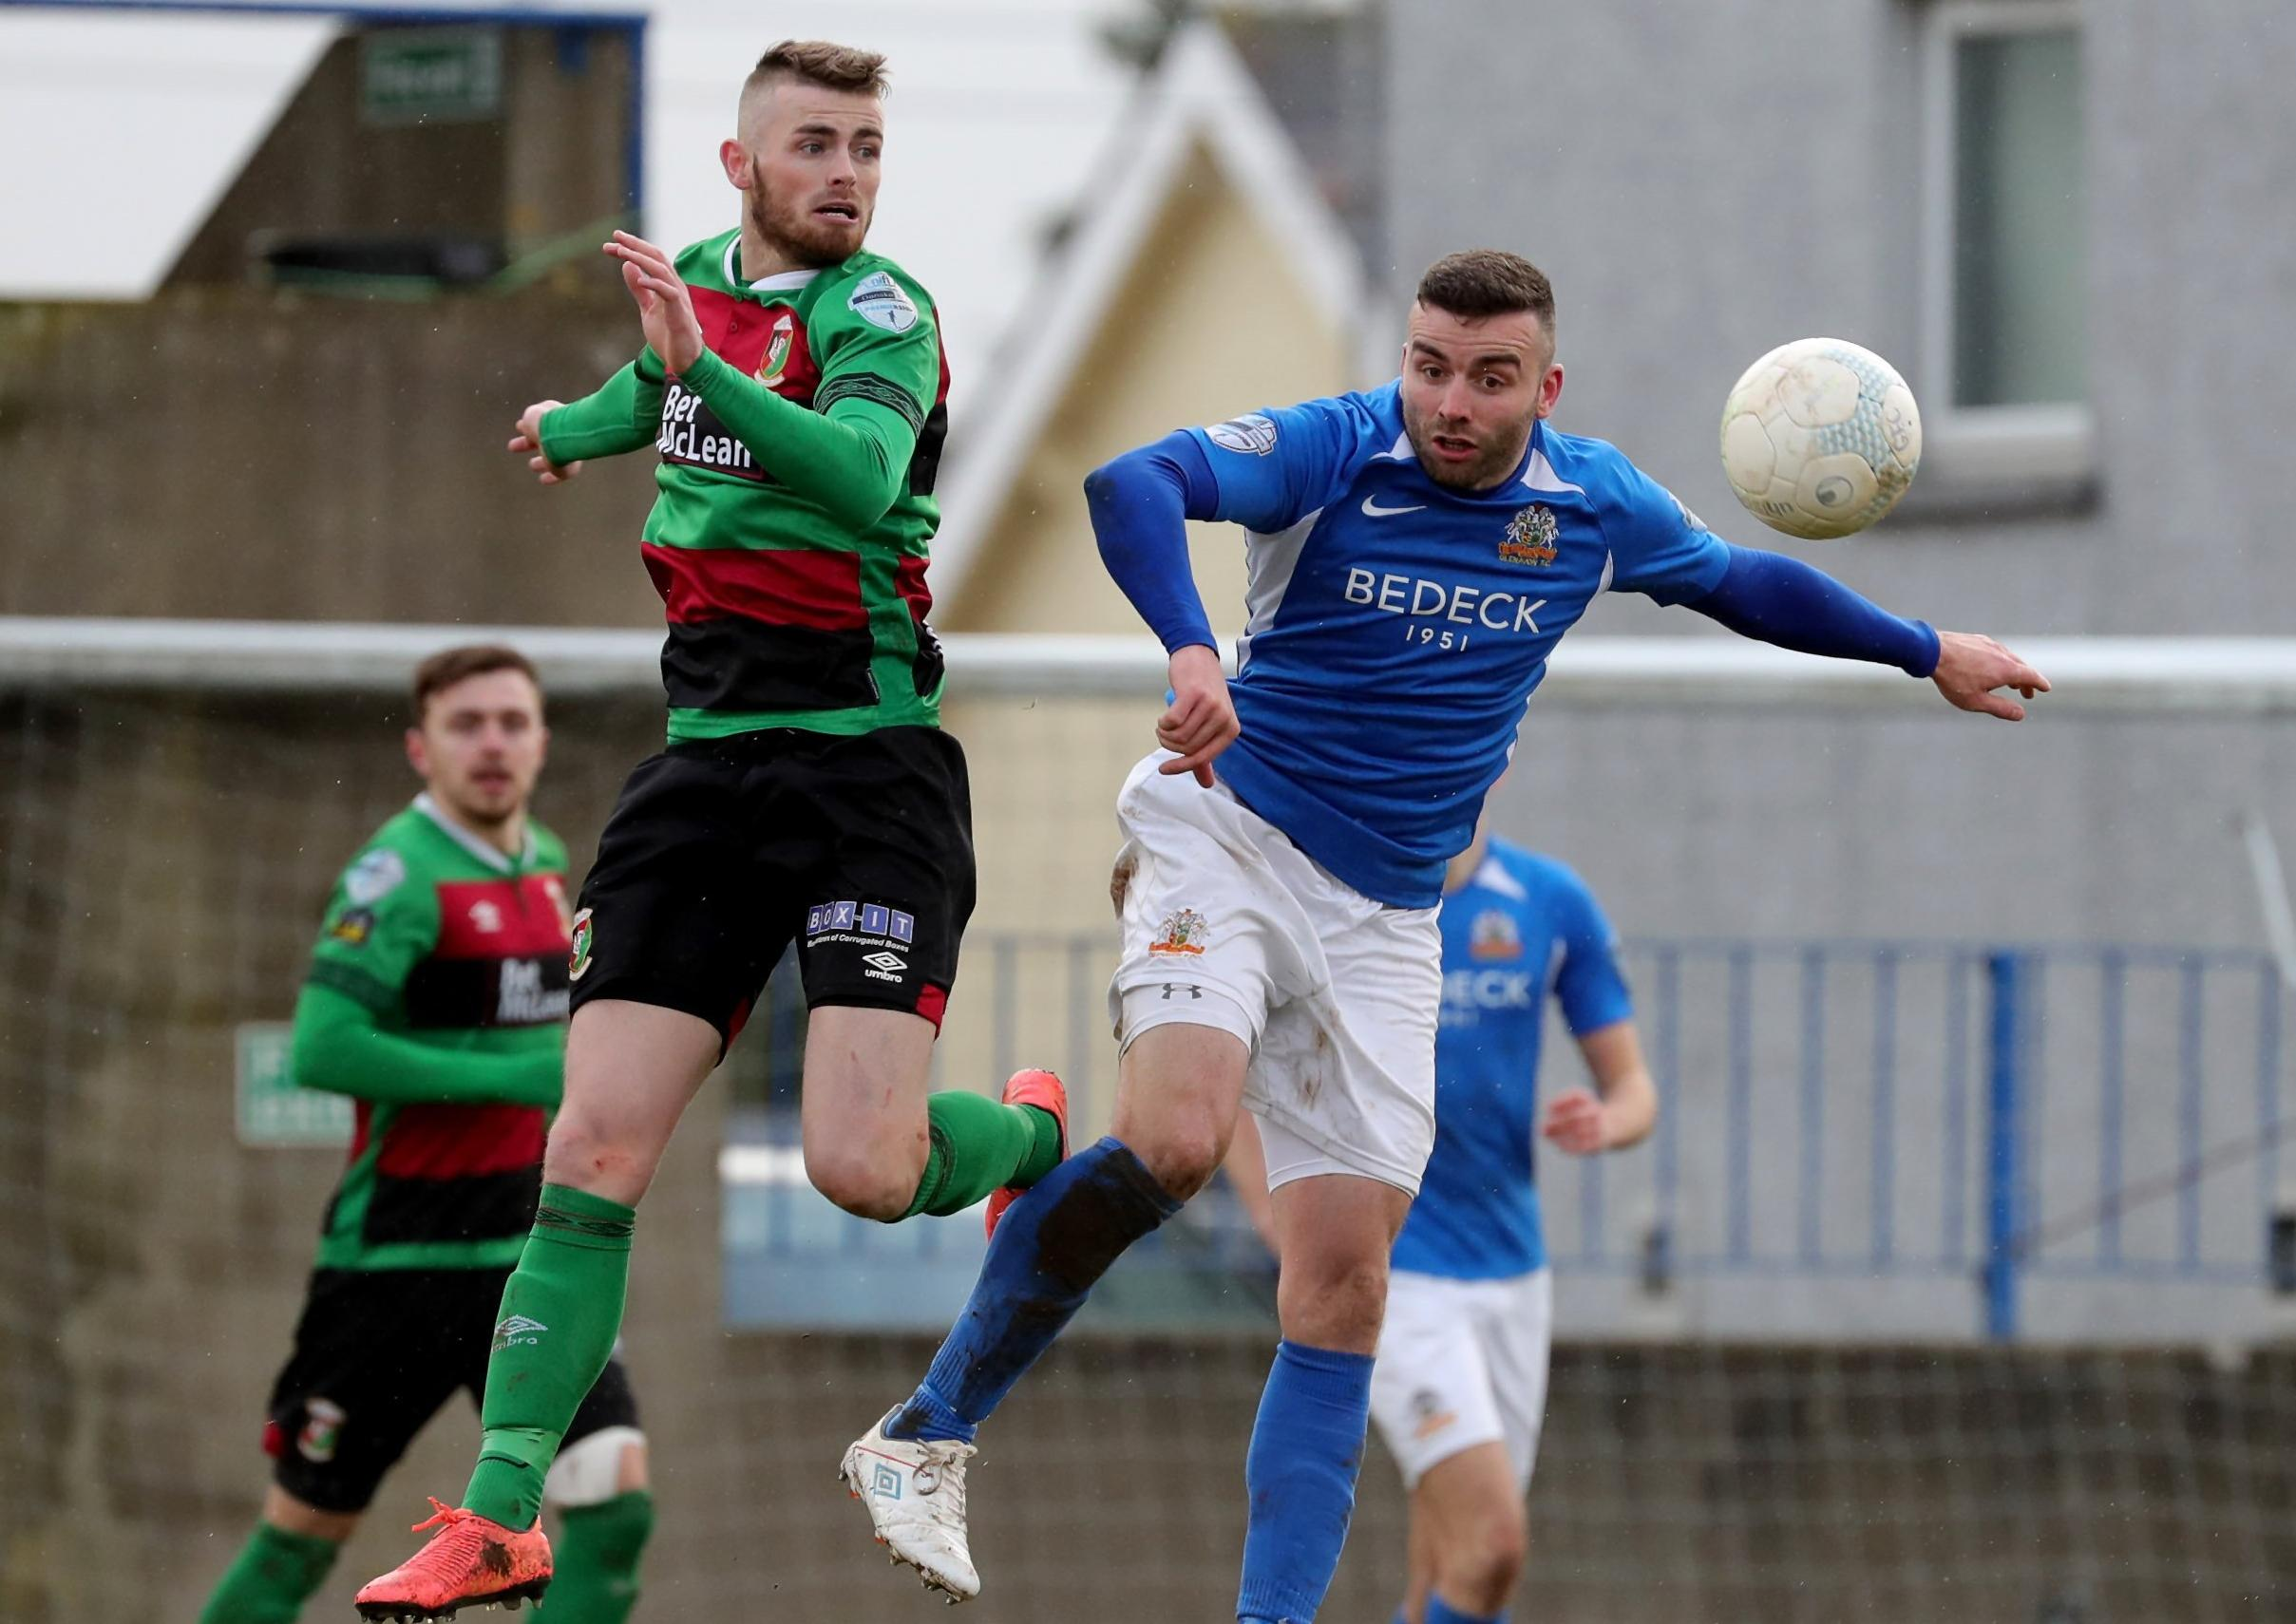 Glentoran's Paul Millar accepts 'massive' Linfield gap but vows to keep on  fighting | Belfast News Letter